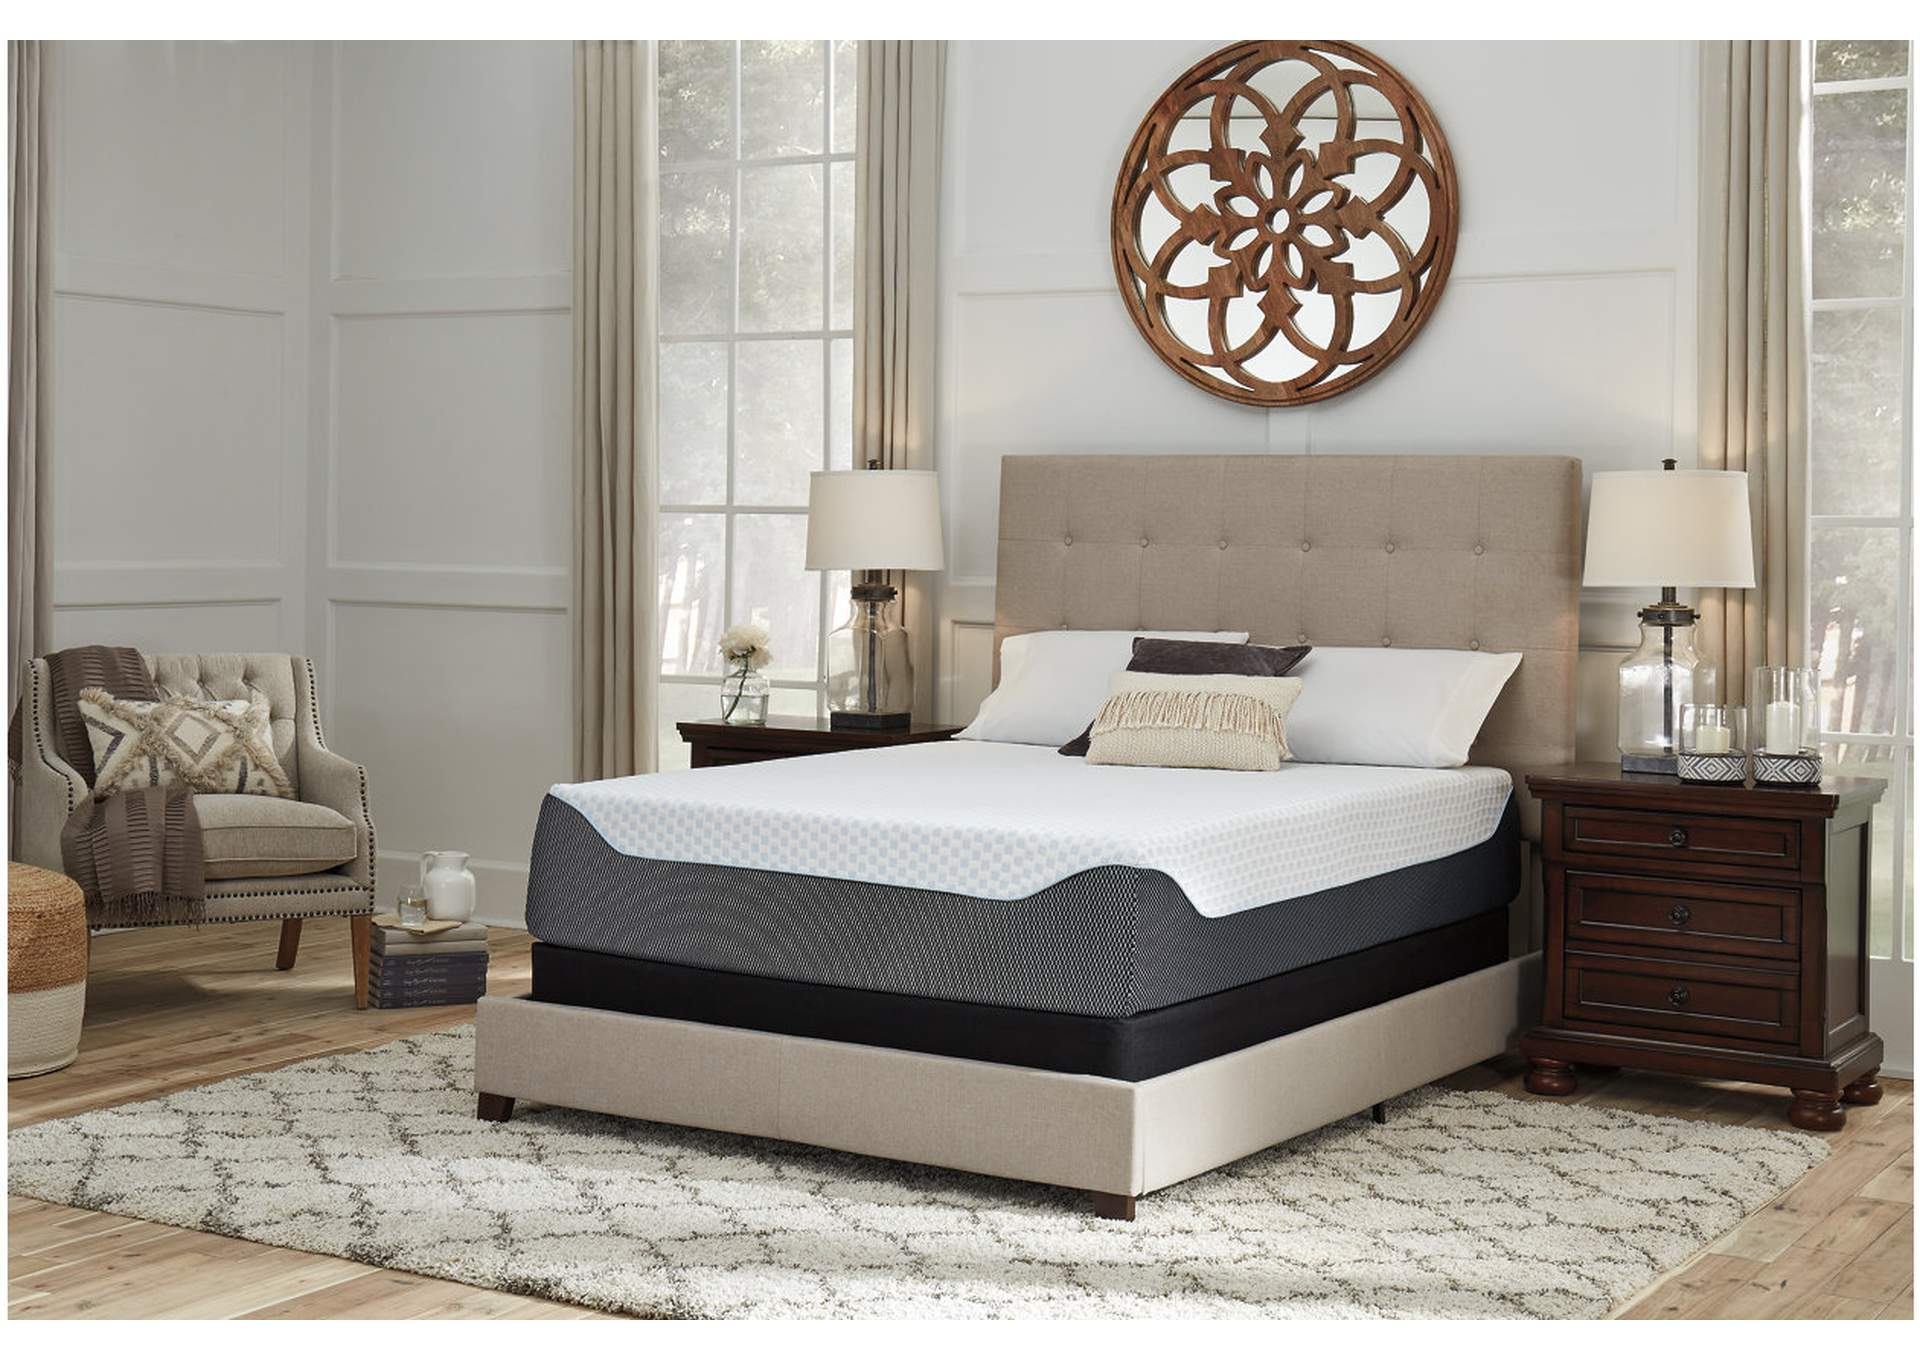 14 Inch Chime Elite King Memory Foam Mattress in a Box,Sierra Sleep by Ashley